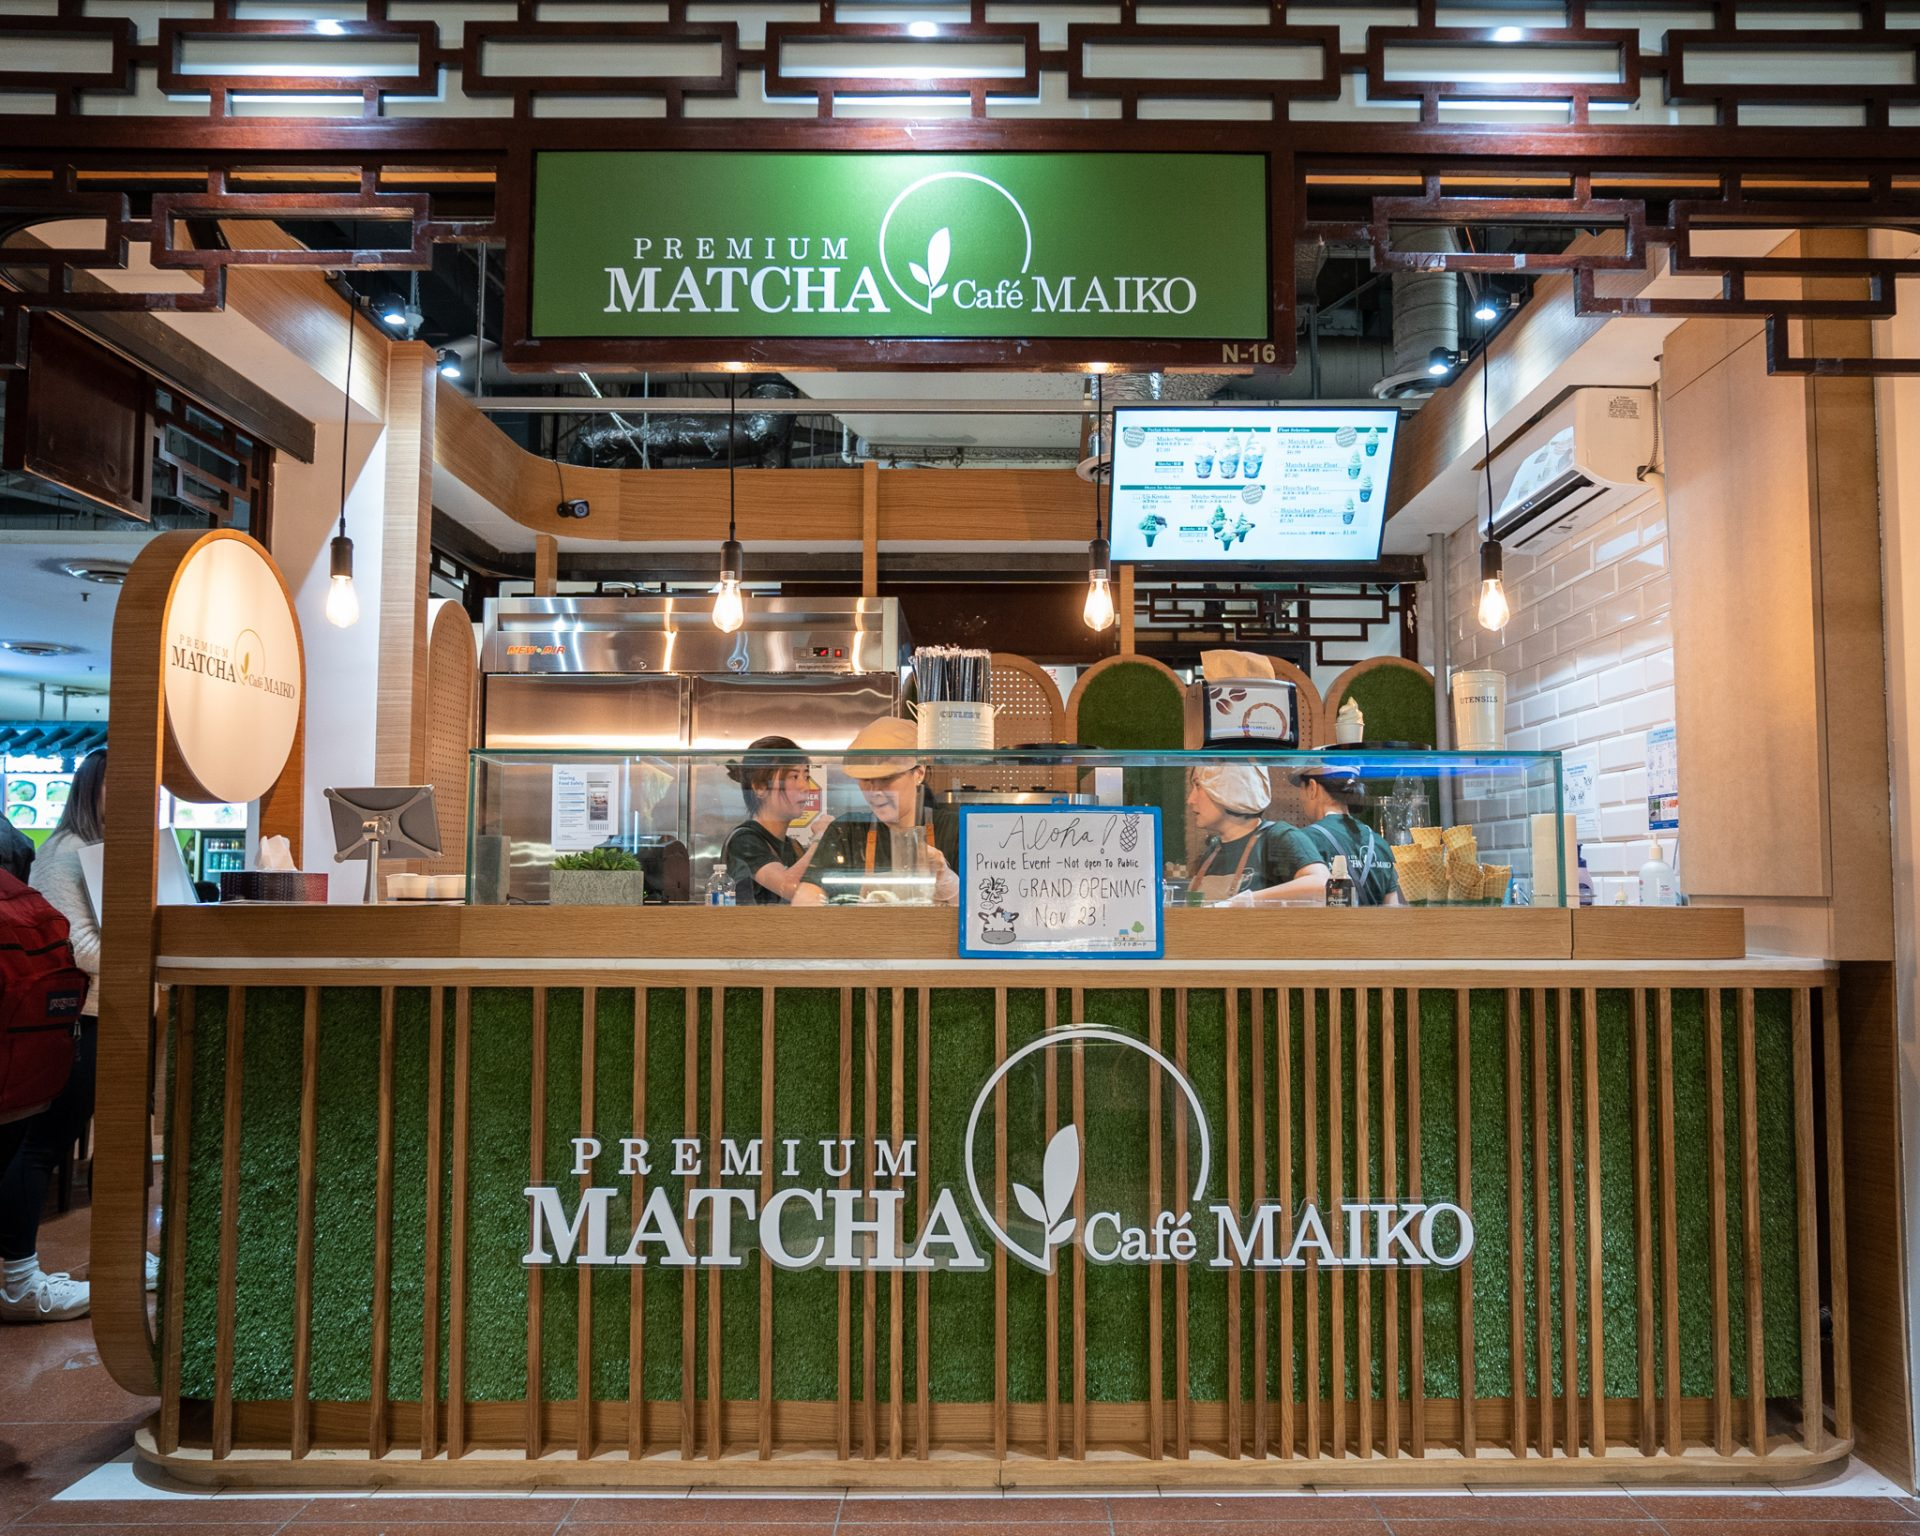 Matcha Cafe Maiko in Markham